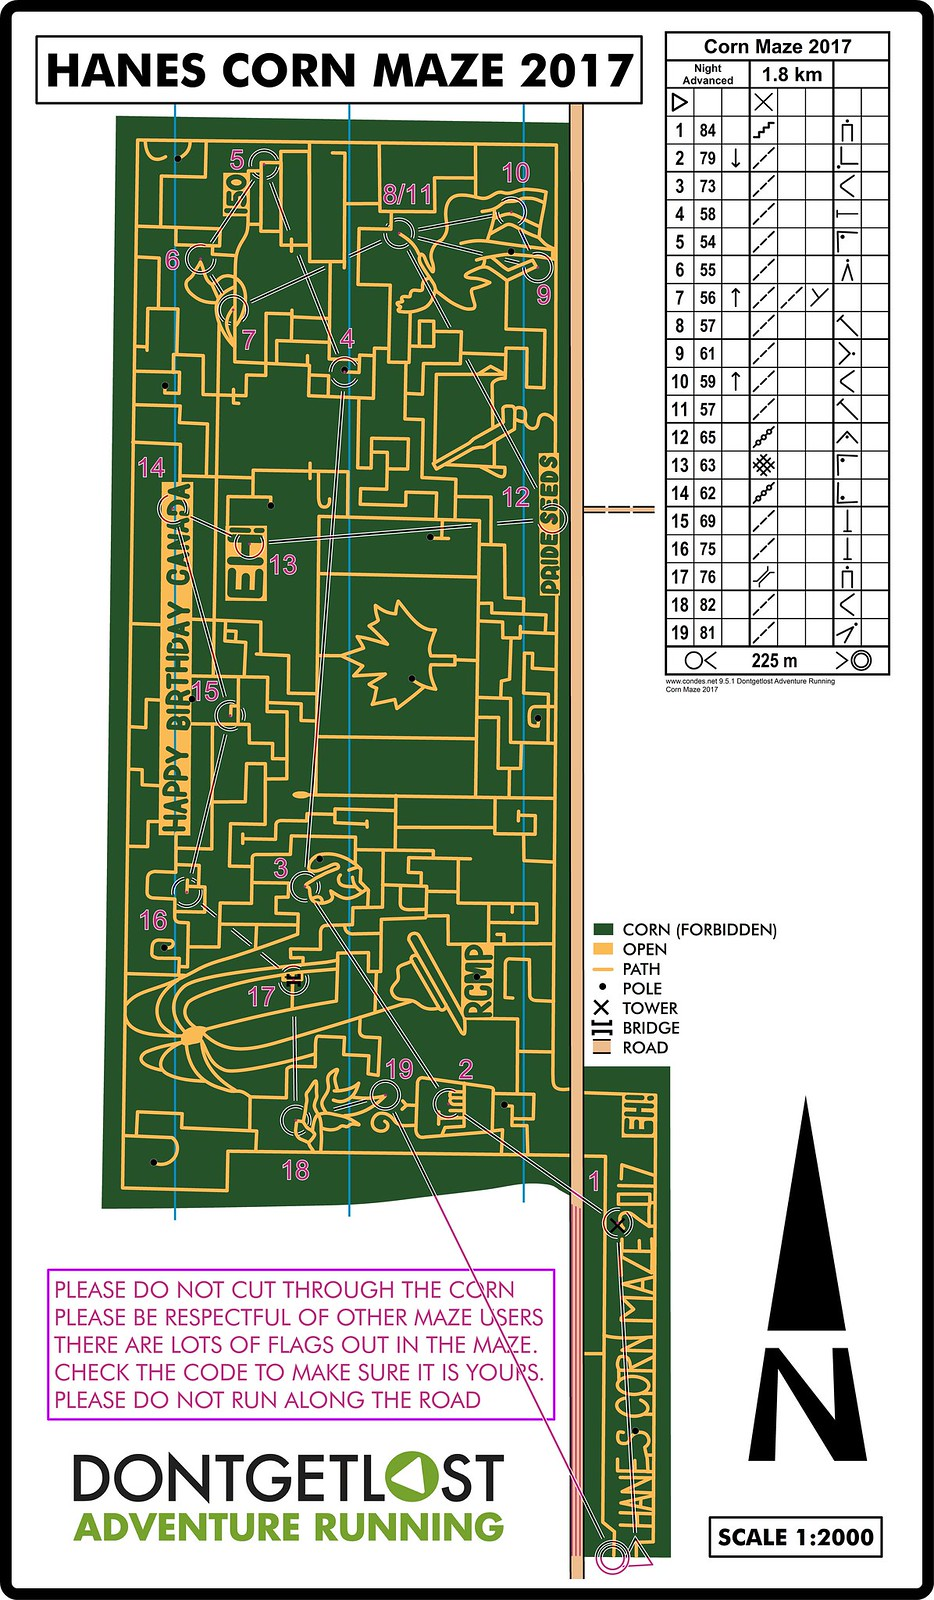 Night Advanced Corn Maze 2017 Map